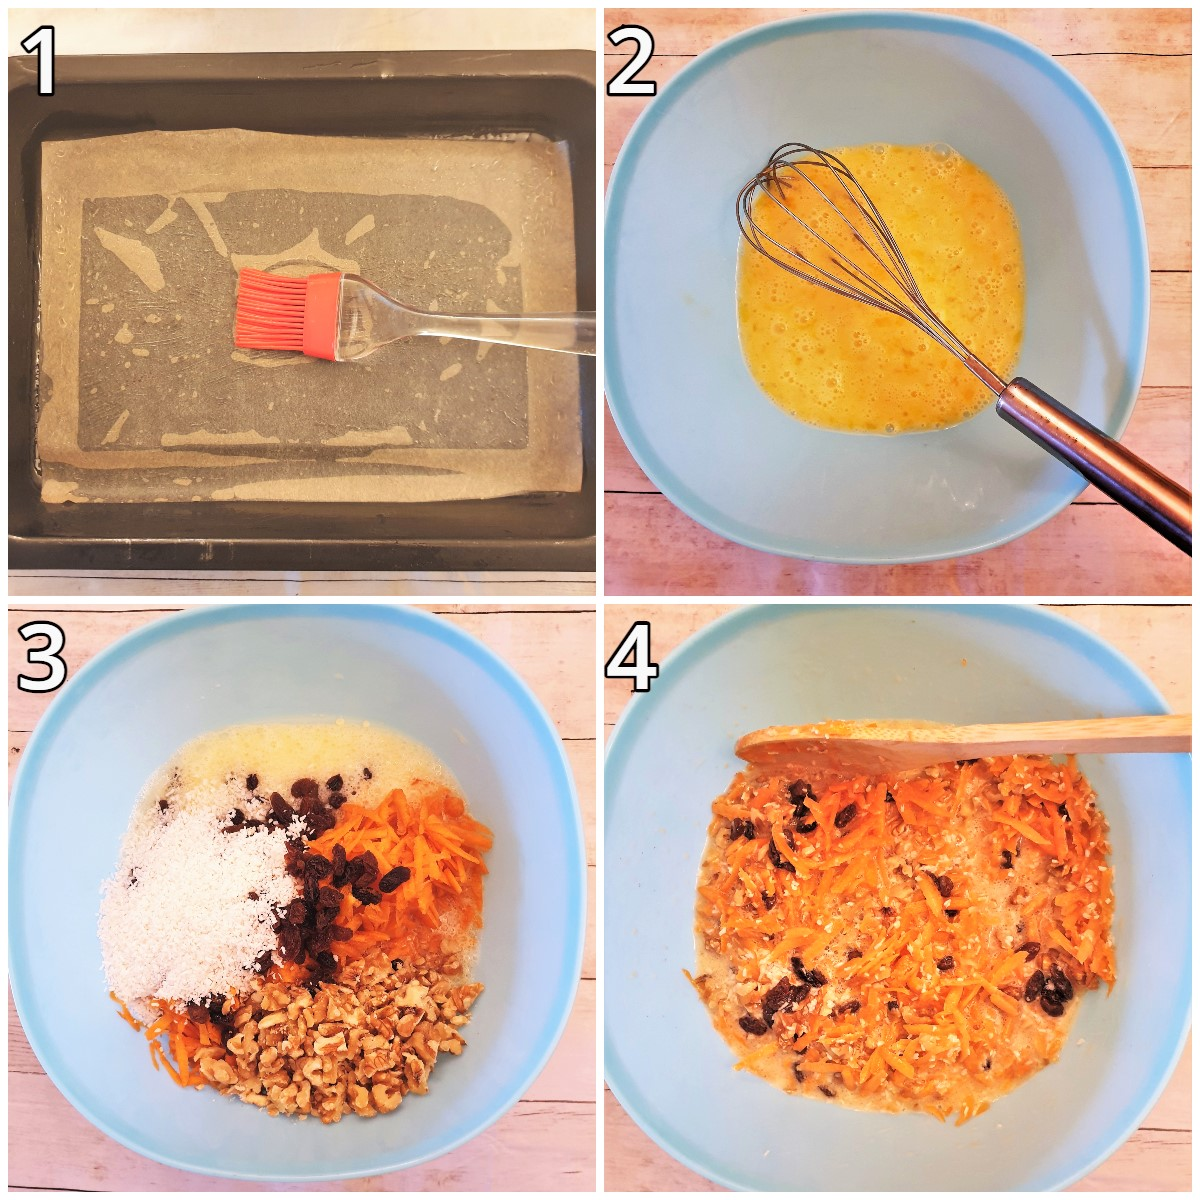 Steps for mixing the wet ingredients.